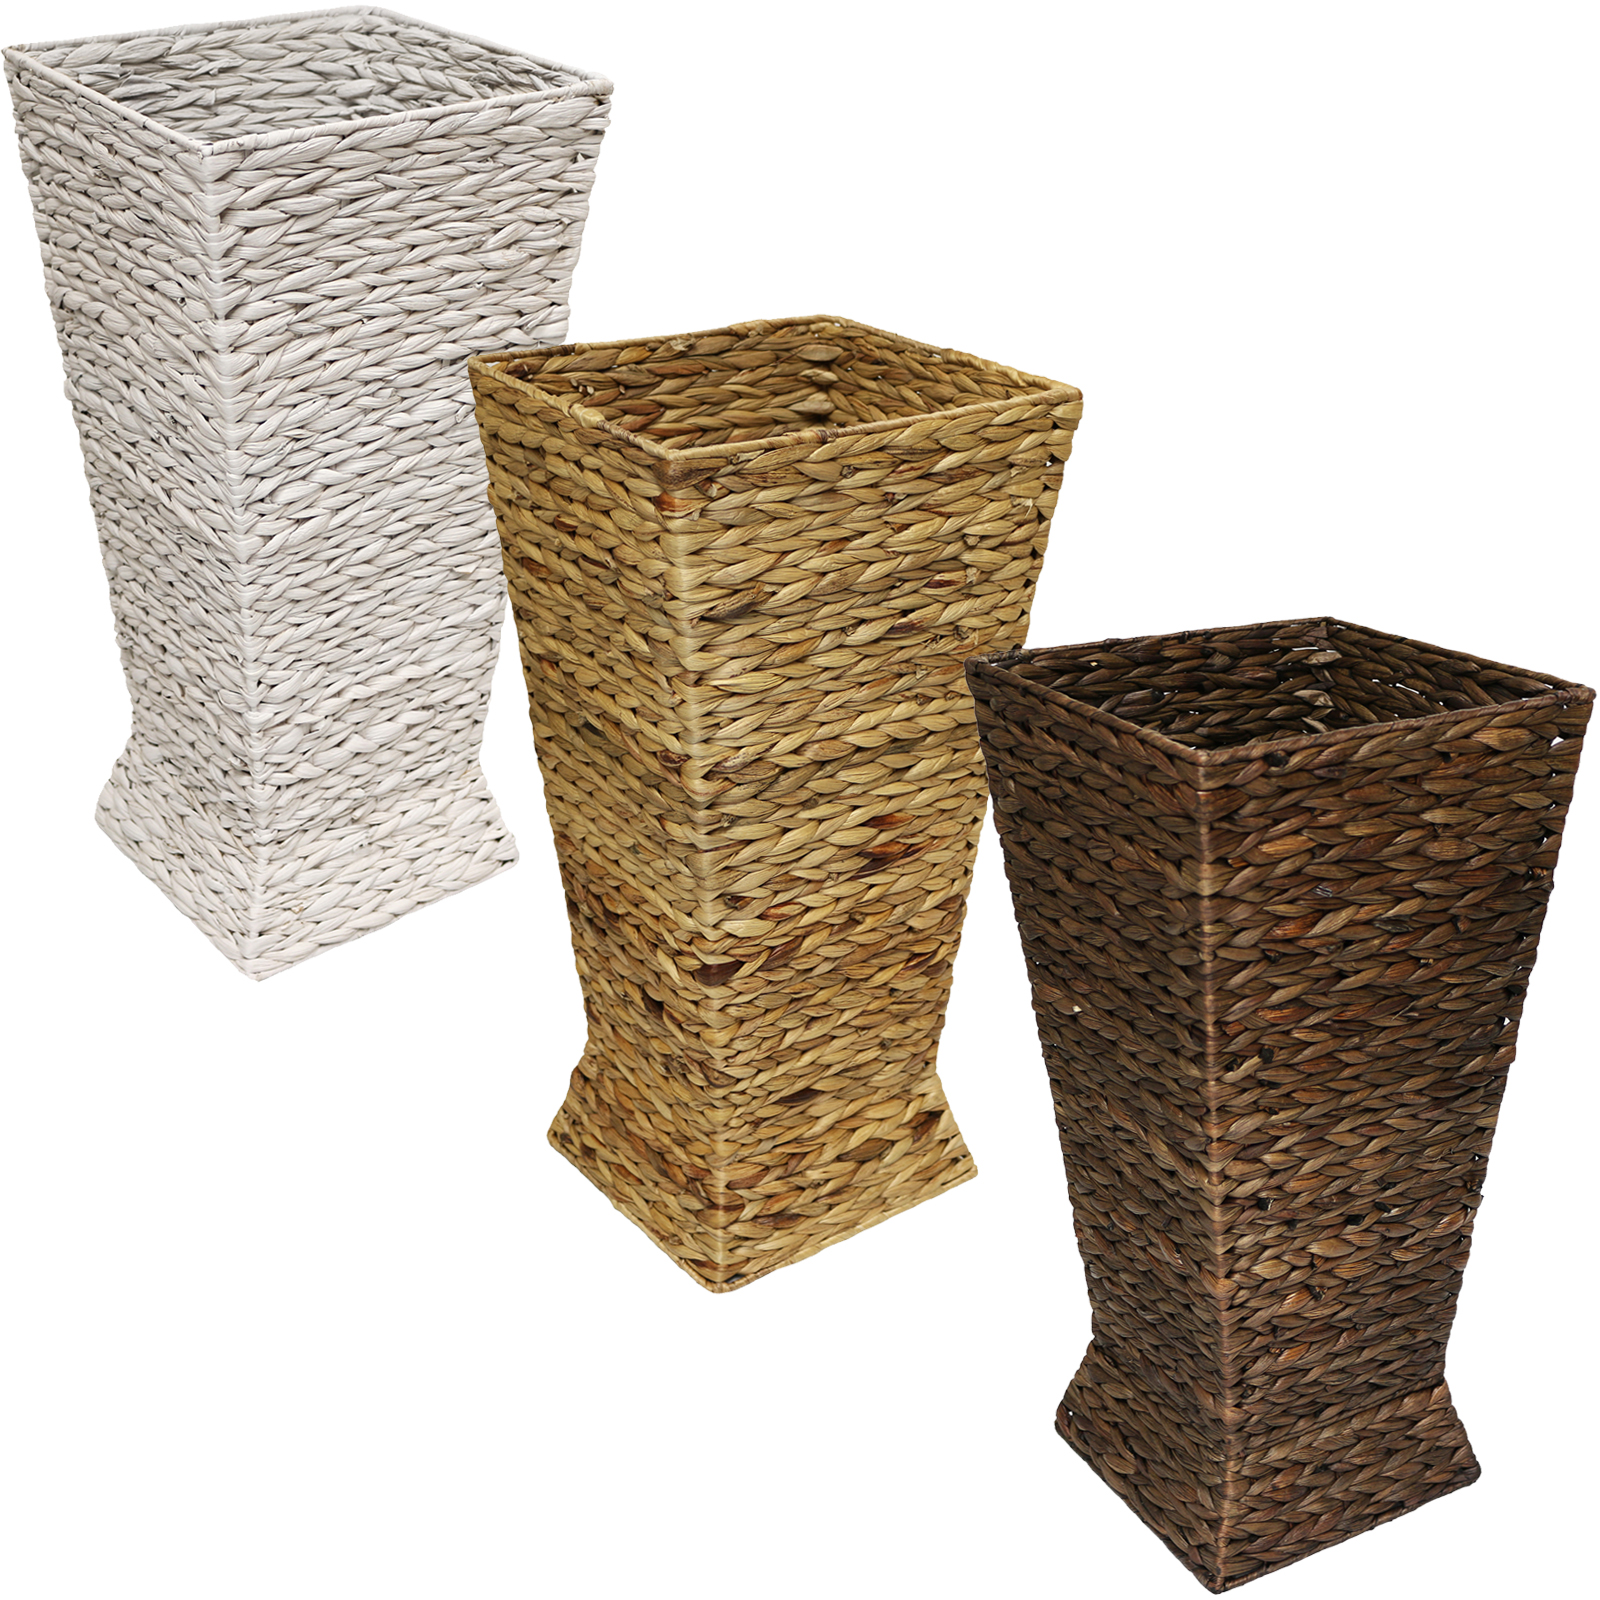 Hartleys Woven Wicker Hallway Umbrella Basket Stand